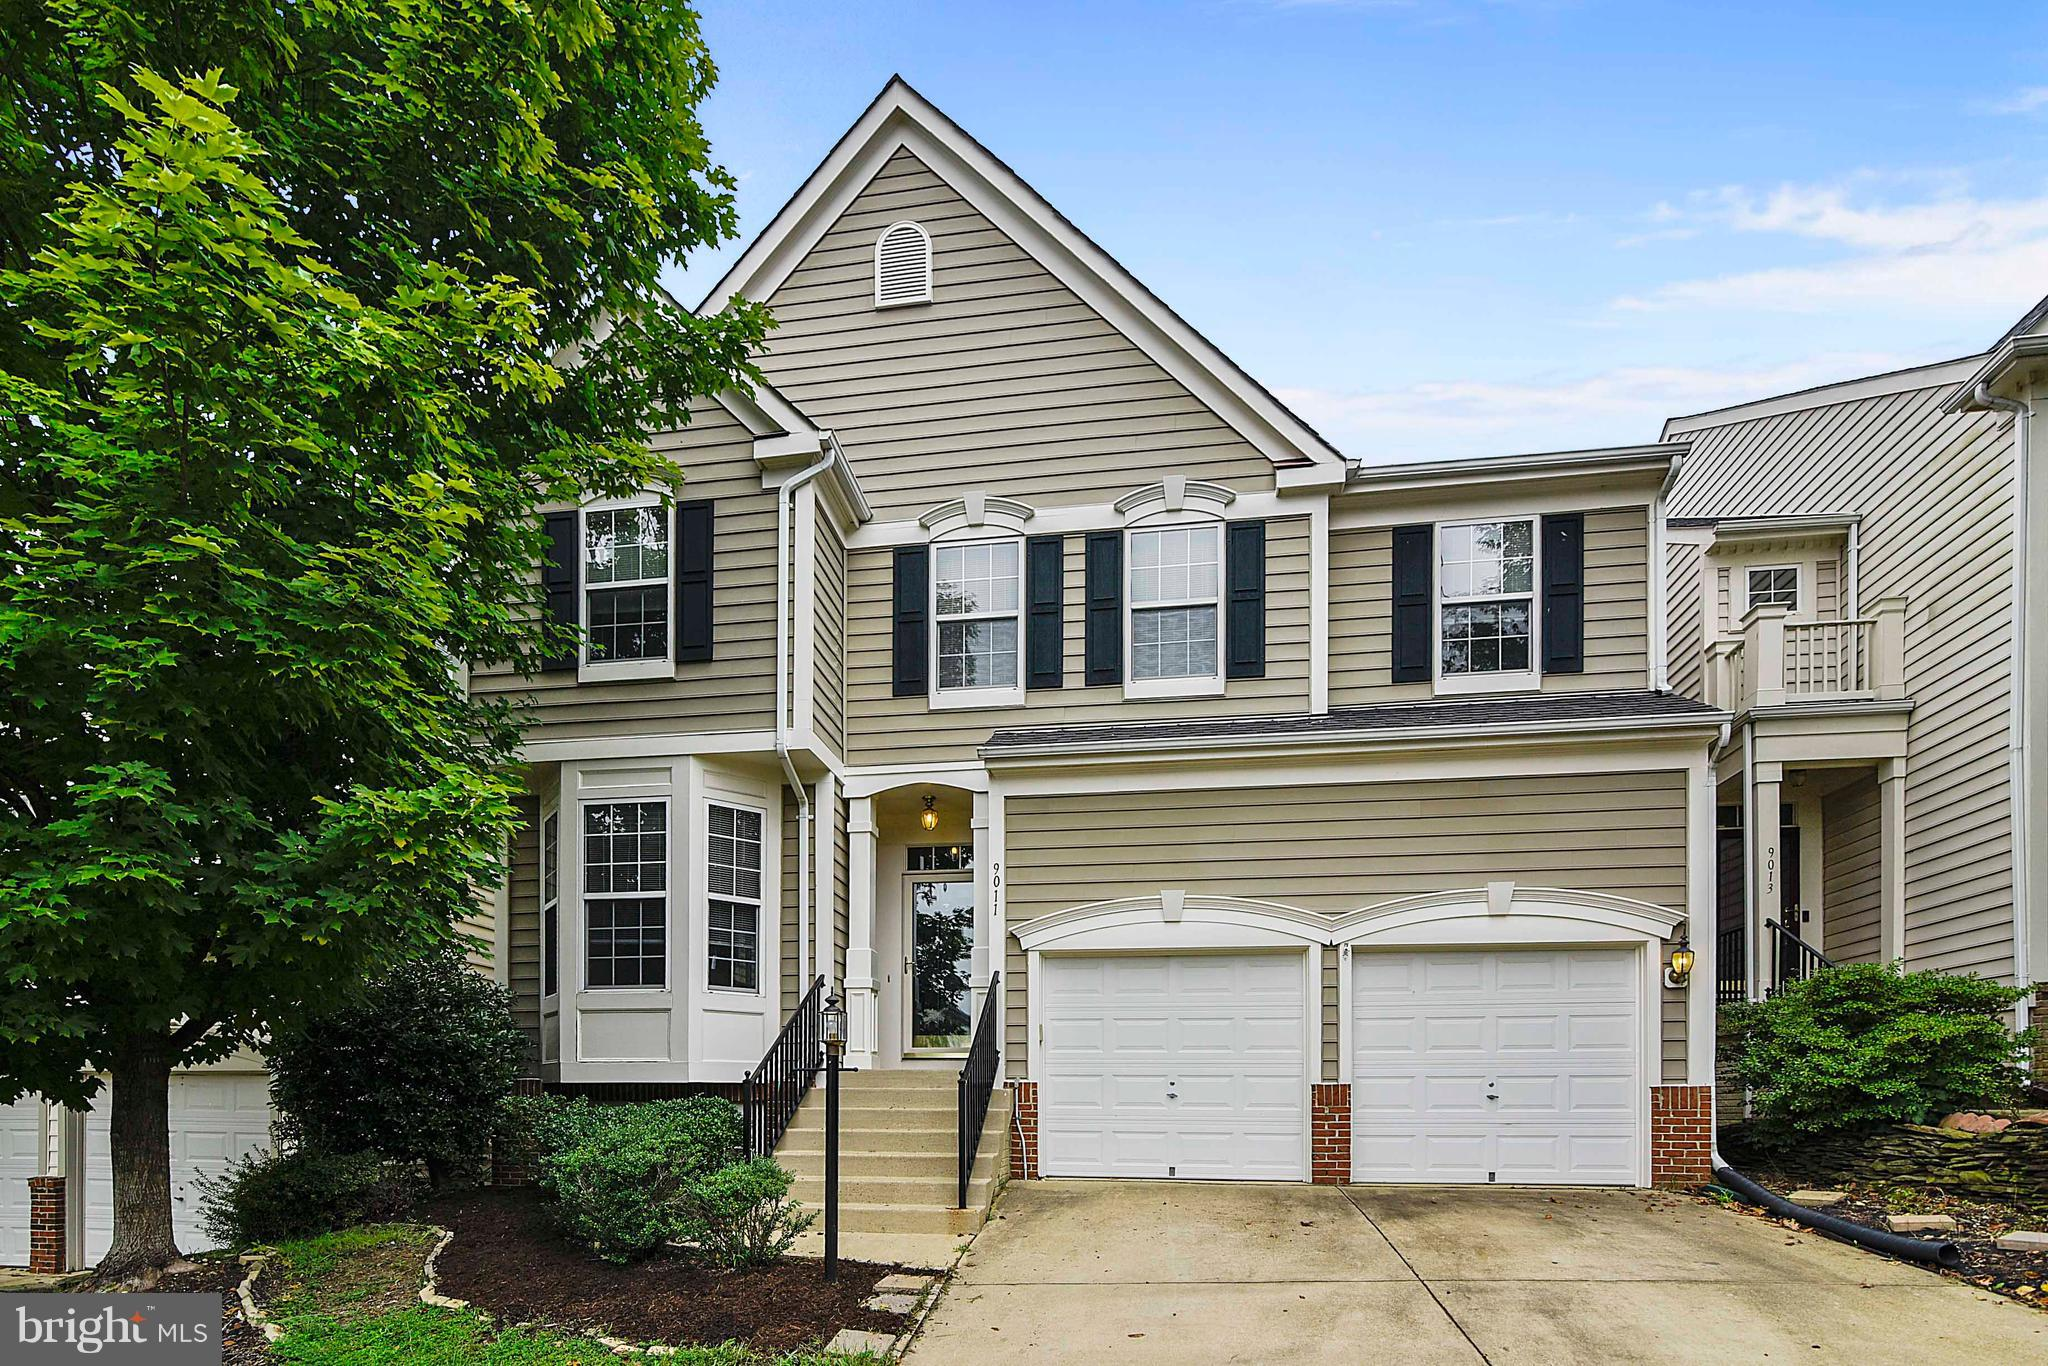 This wonderful 4 bedroom, 3 1/2 bath home features an open floor plan, 2 car garage, deck. A finished basement with full bath. Just across the street from the Lorton Station Town Center and the VRE Commuter lot.  Walk to the community pool, shops and restaurants. Easy access to I-95, NGA, Ft. Belvoir, DC & Alexandria. A Great walkable community where you can live, dine, and play. Also For Rent!